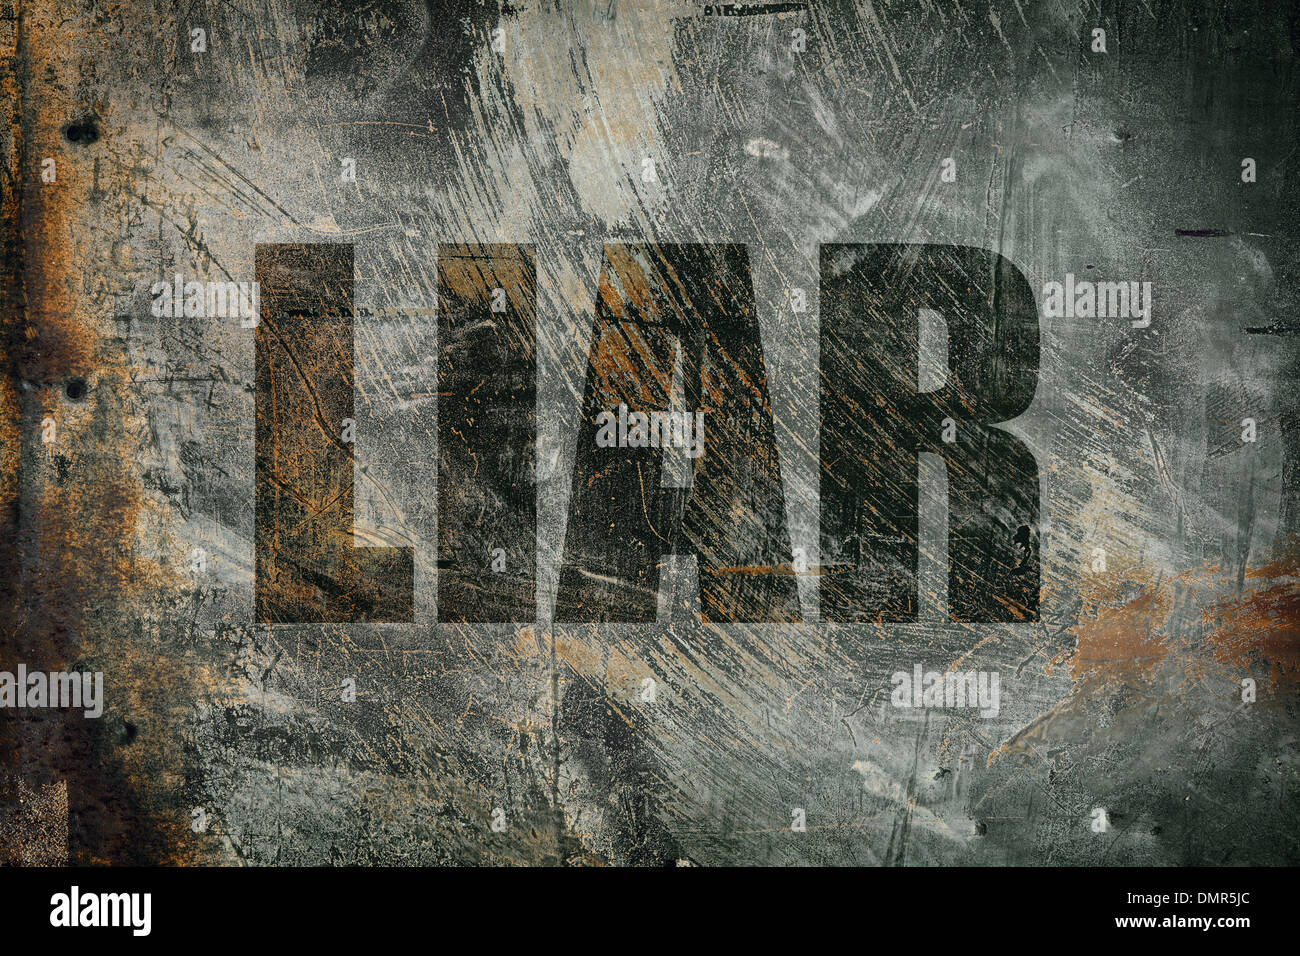 liar - Stock Image